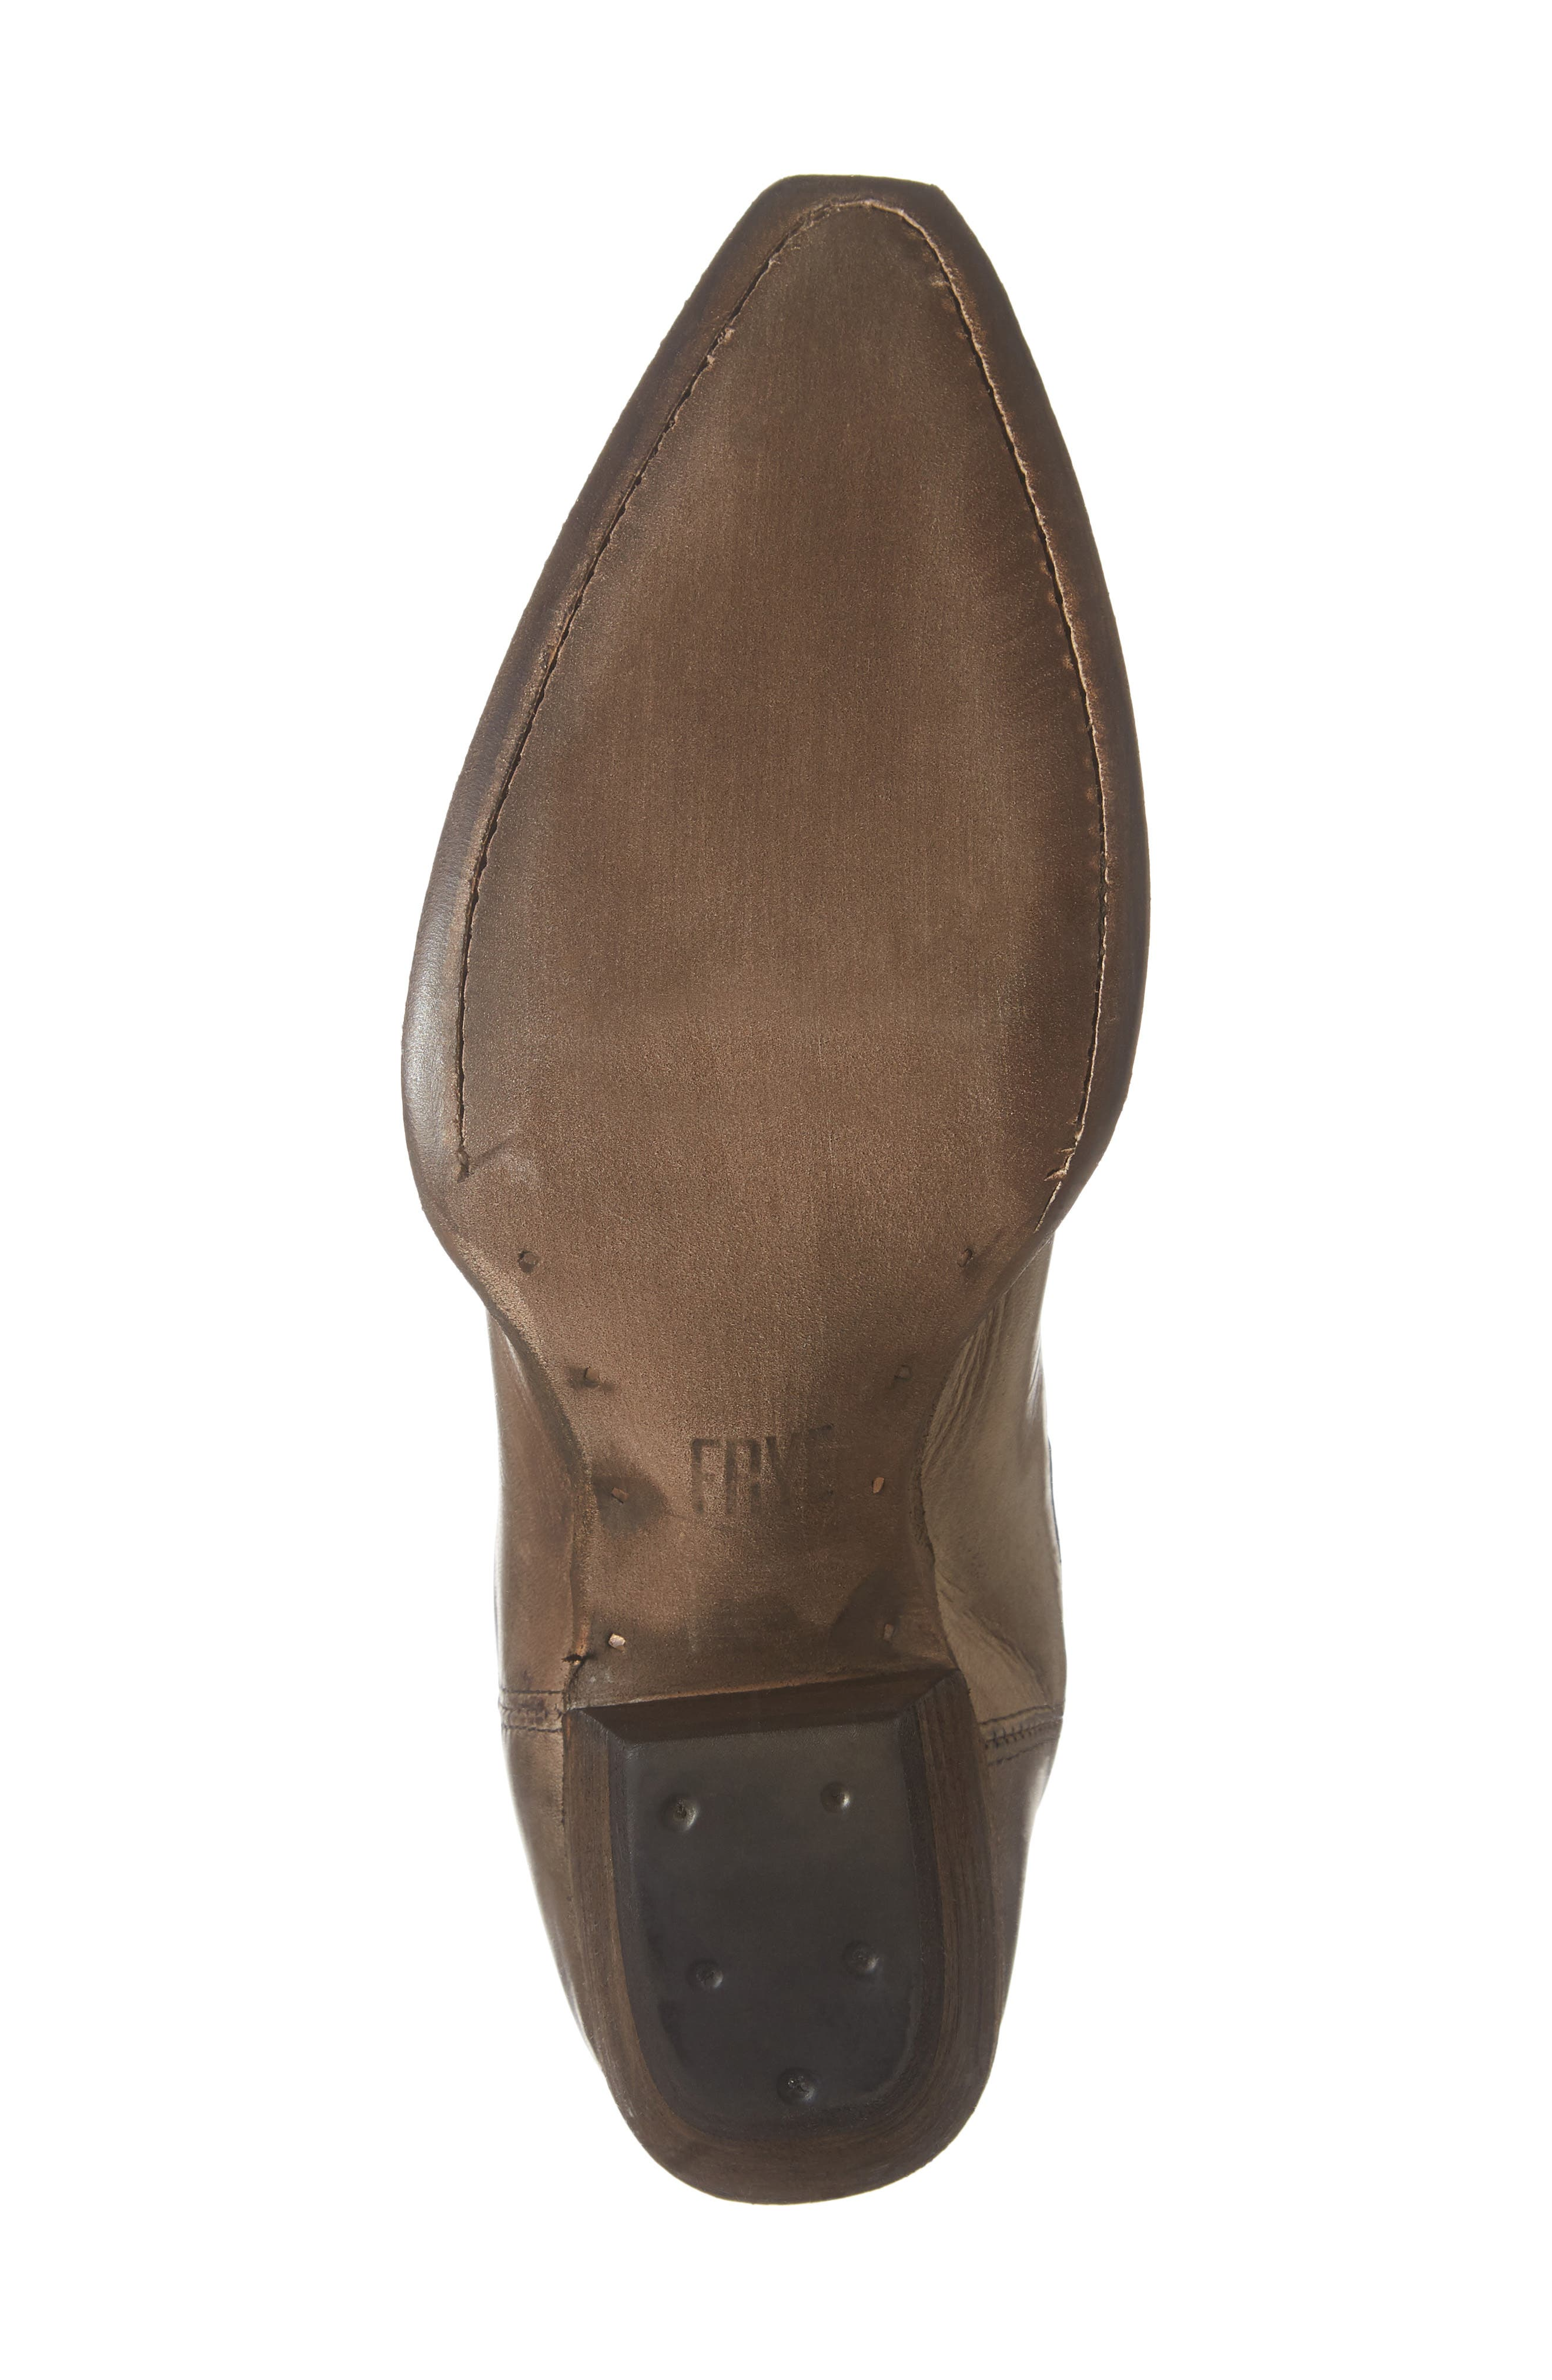 Sacha Western Bootie,                             Alternate thumbnail 6, color,                             STONE LEATHER